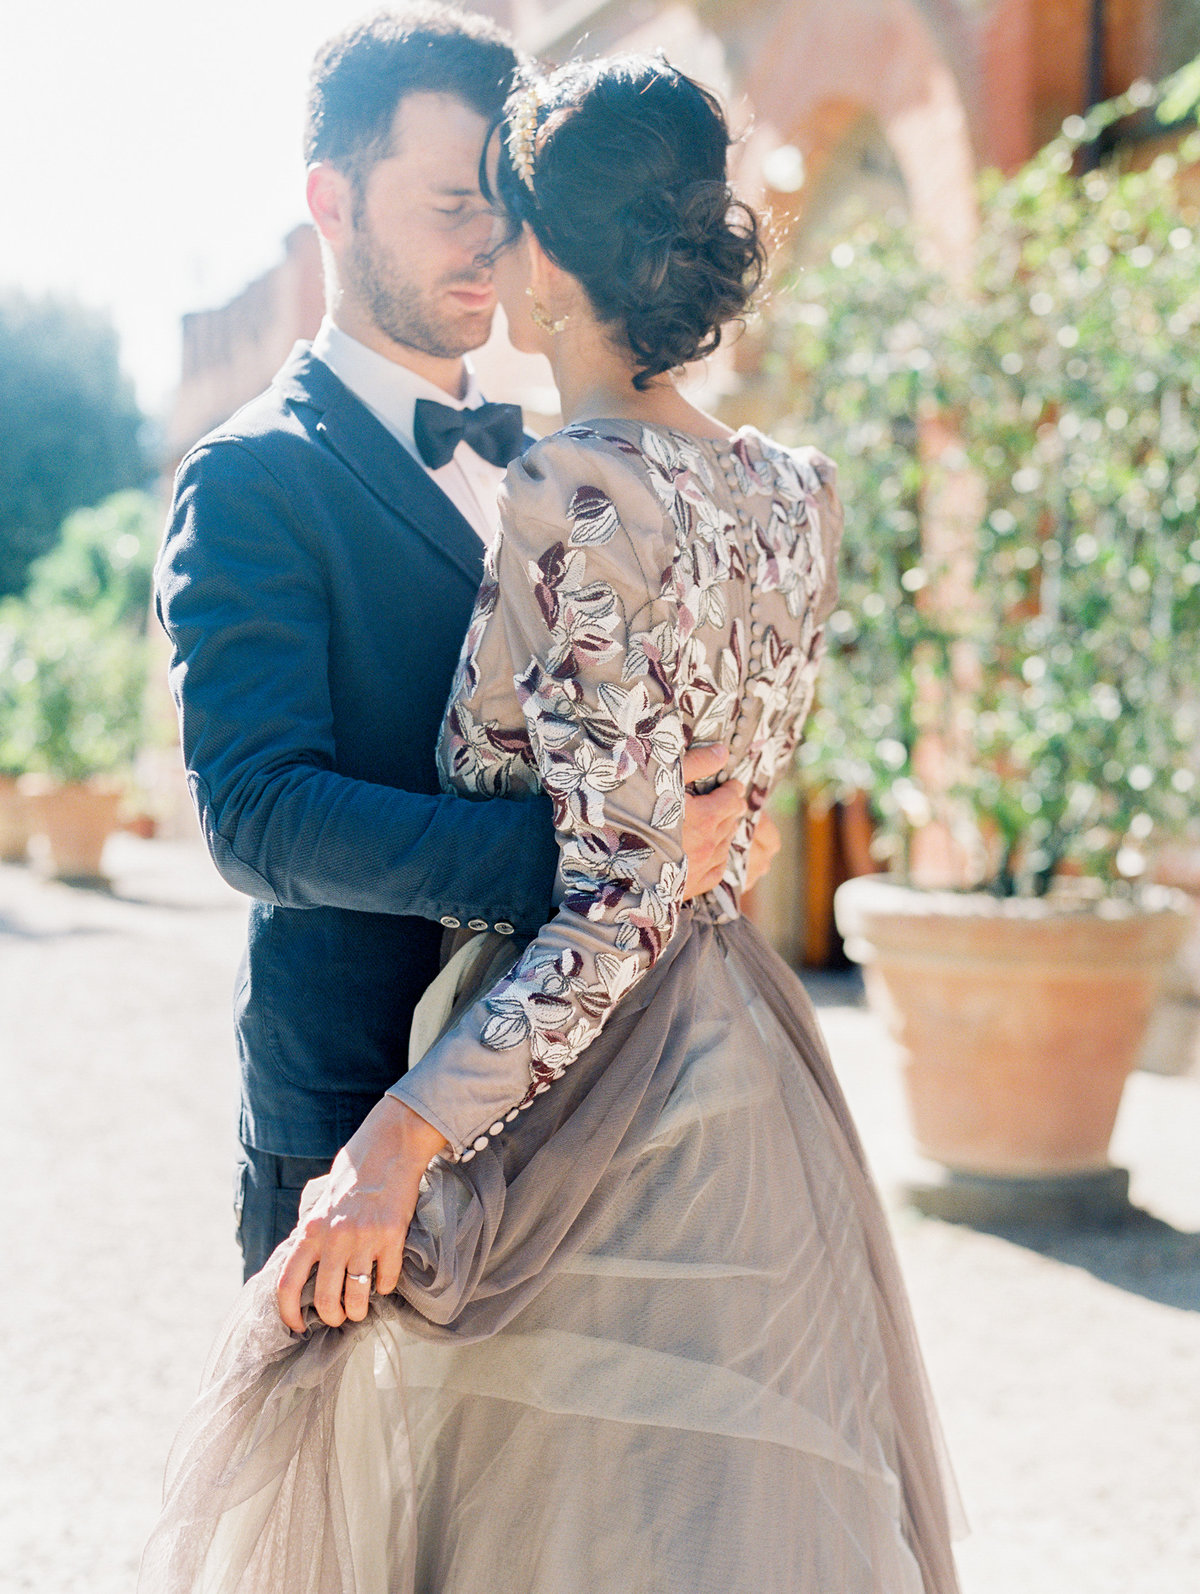 Marni.Wishart.Weddings_In_Tuscany.06.20.2018-1090